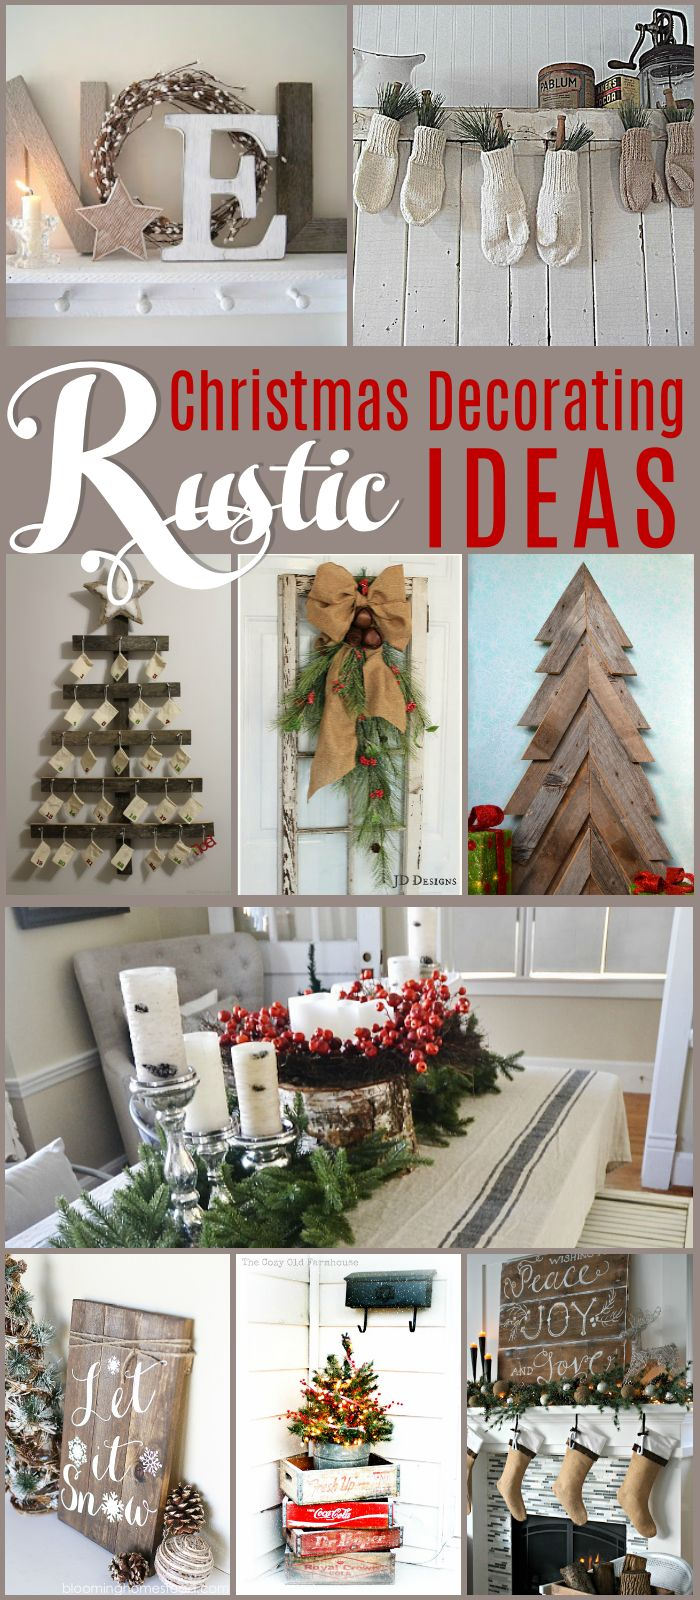 Beautiful Rustic Christmas Decorating Ideas - you won't believe what's being used as a tree topper! Lots of DIY ideas for giving your home a rustic feel for Christmas.